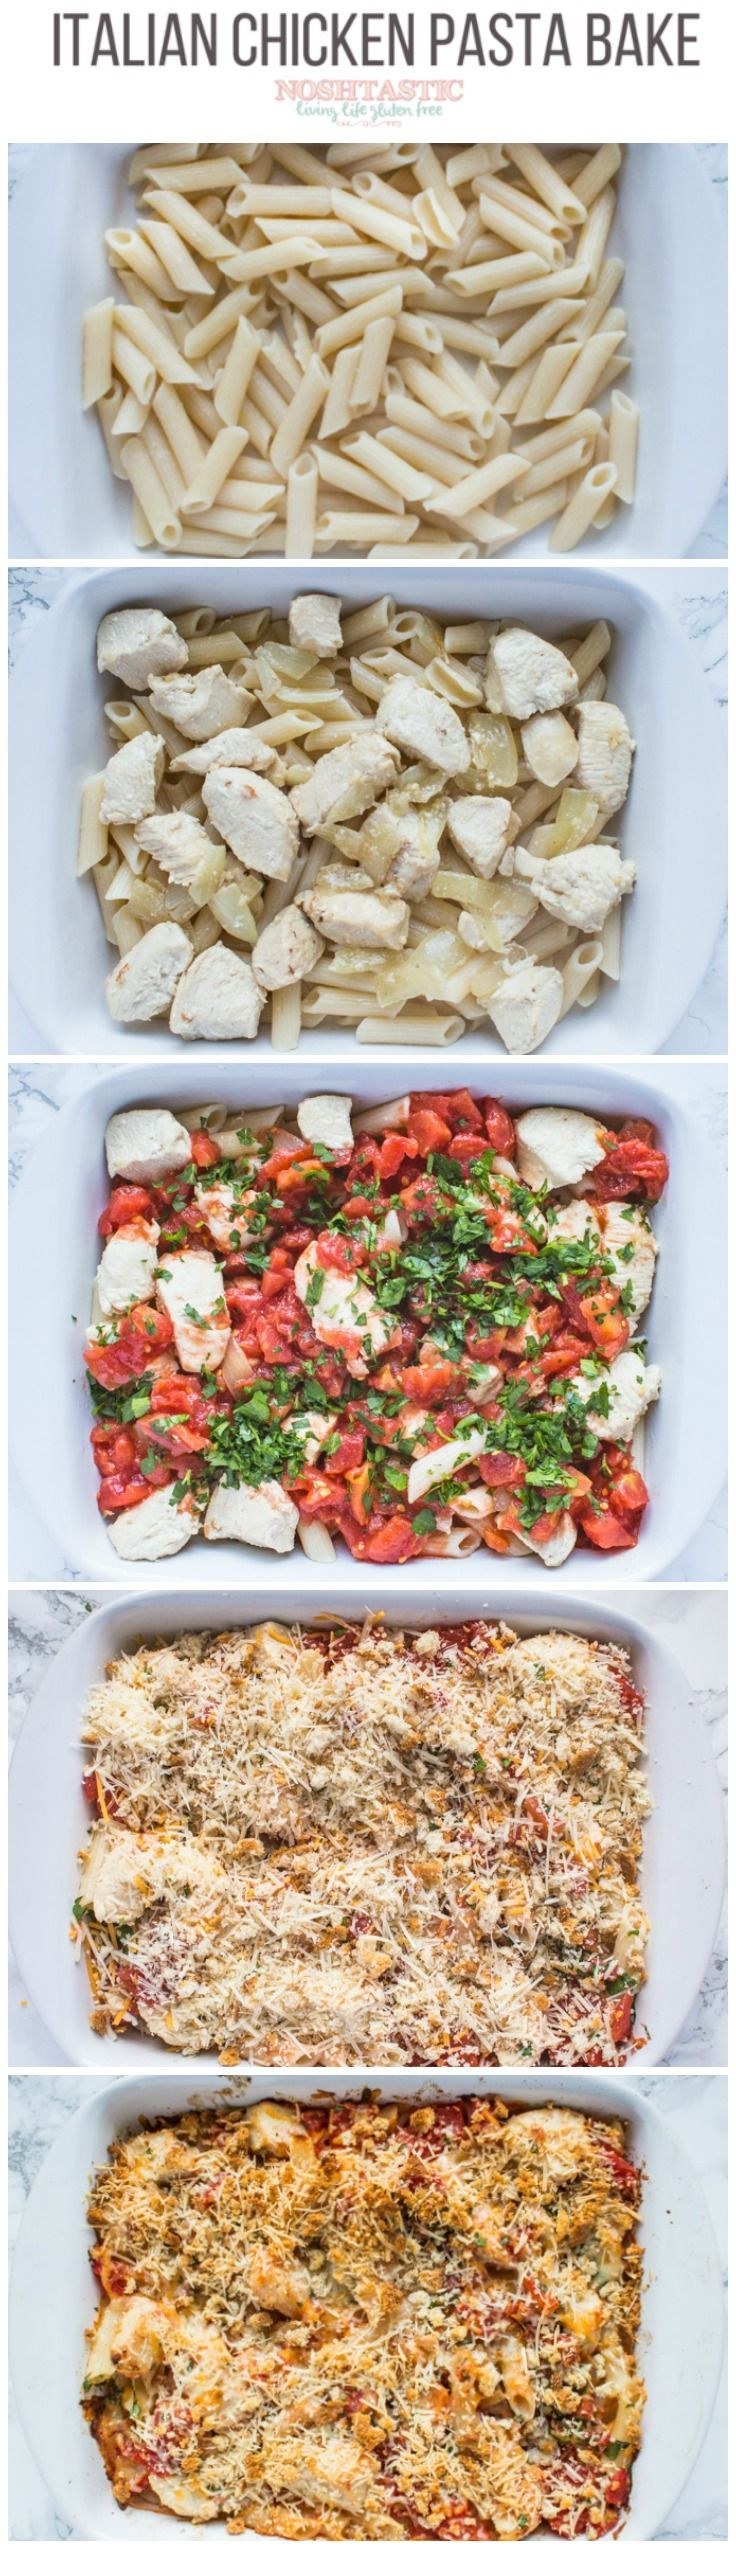 My family LOVED this Italian Chicken Pasta Bake, it's full of cheesy goodness and super easy to make! You can make gluten free and dairy free too